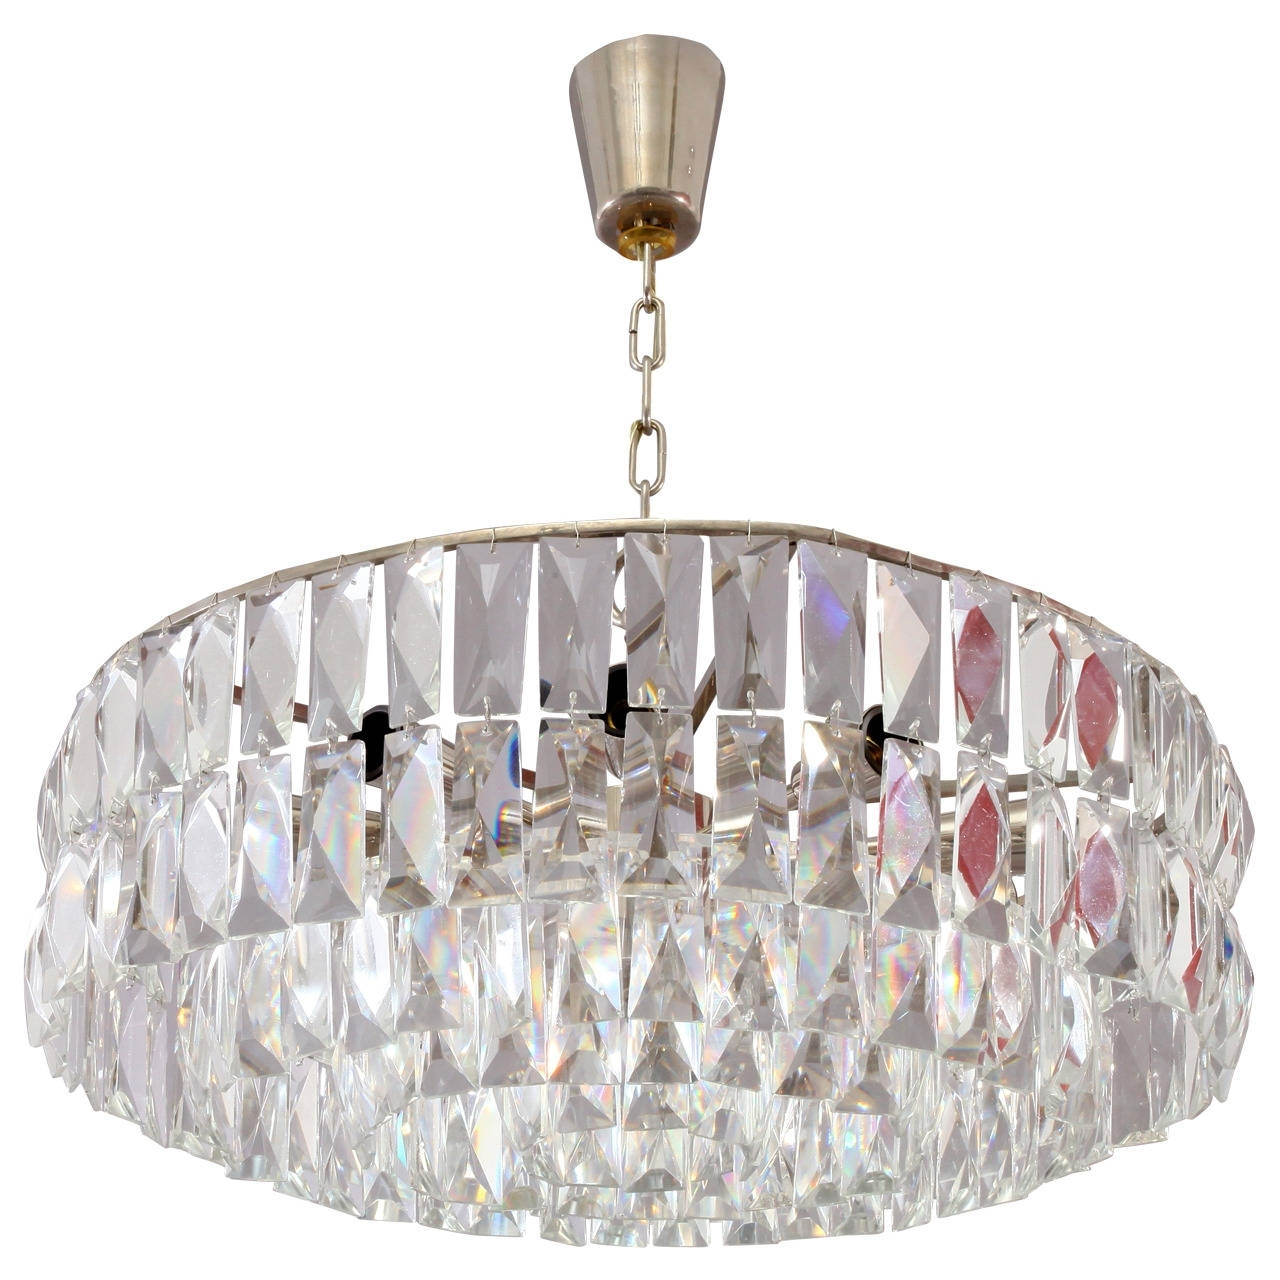 Widely Used Stunning Chandelier With Large Crystalsbakalowits And Sohne Pertaining To Vienna Crystal Chandeliers (View 15 of 15)